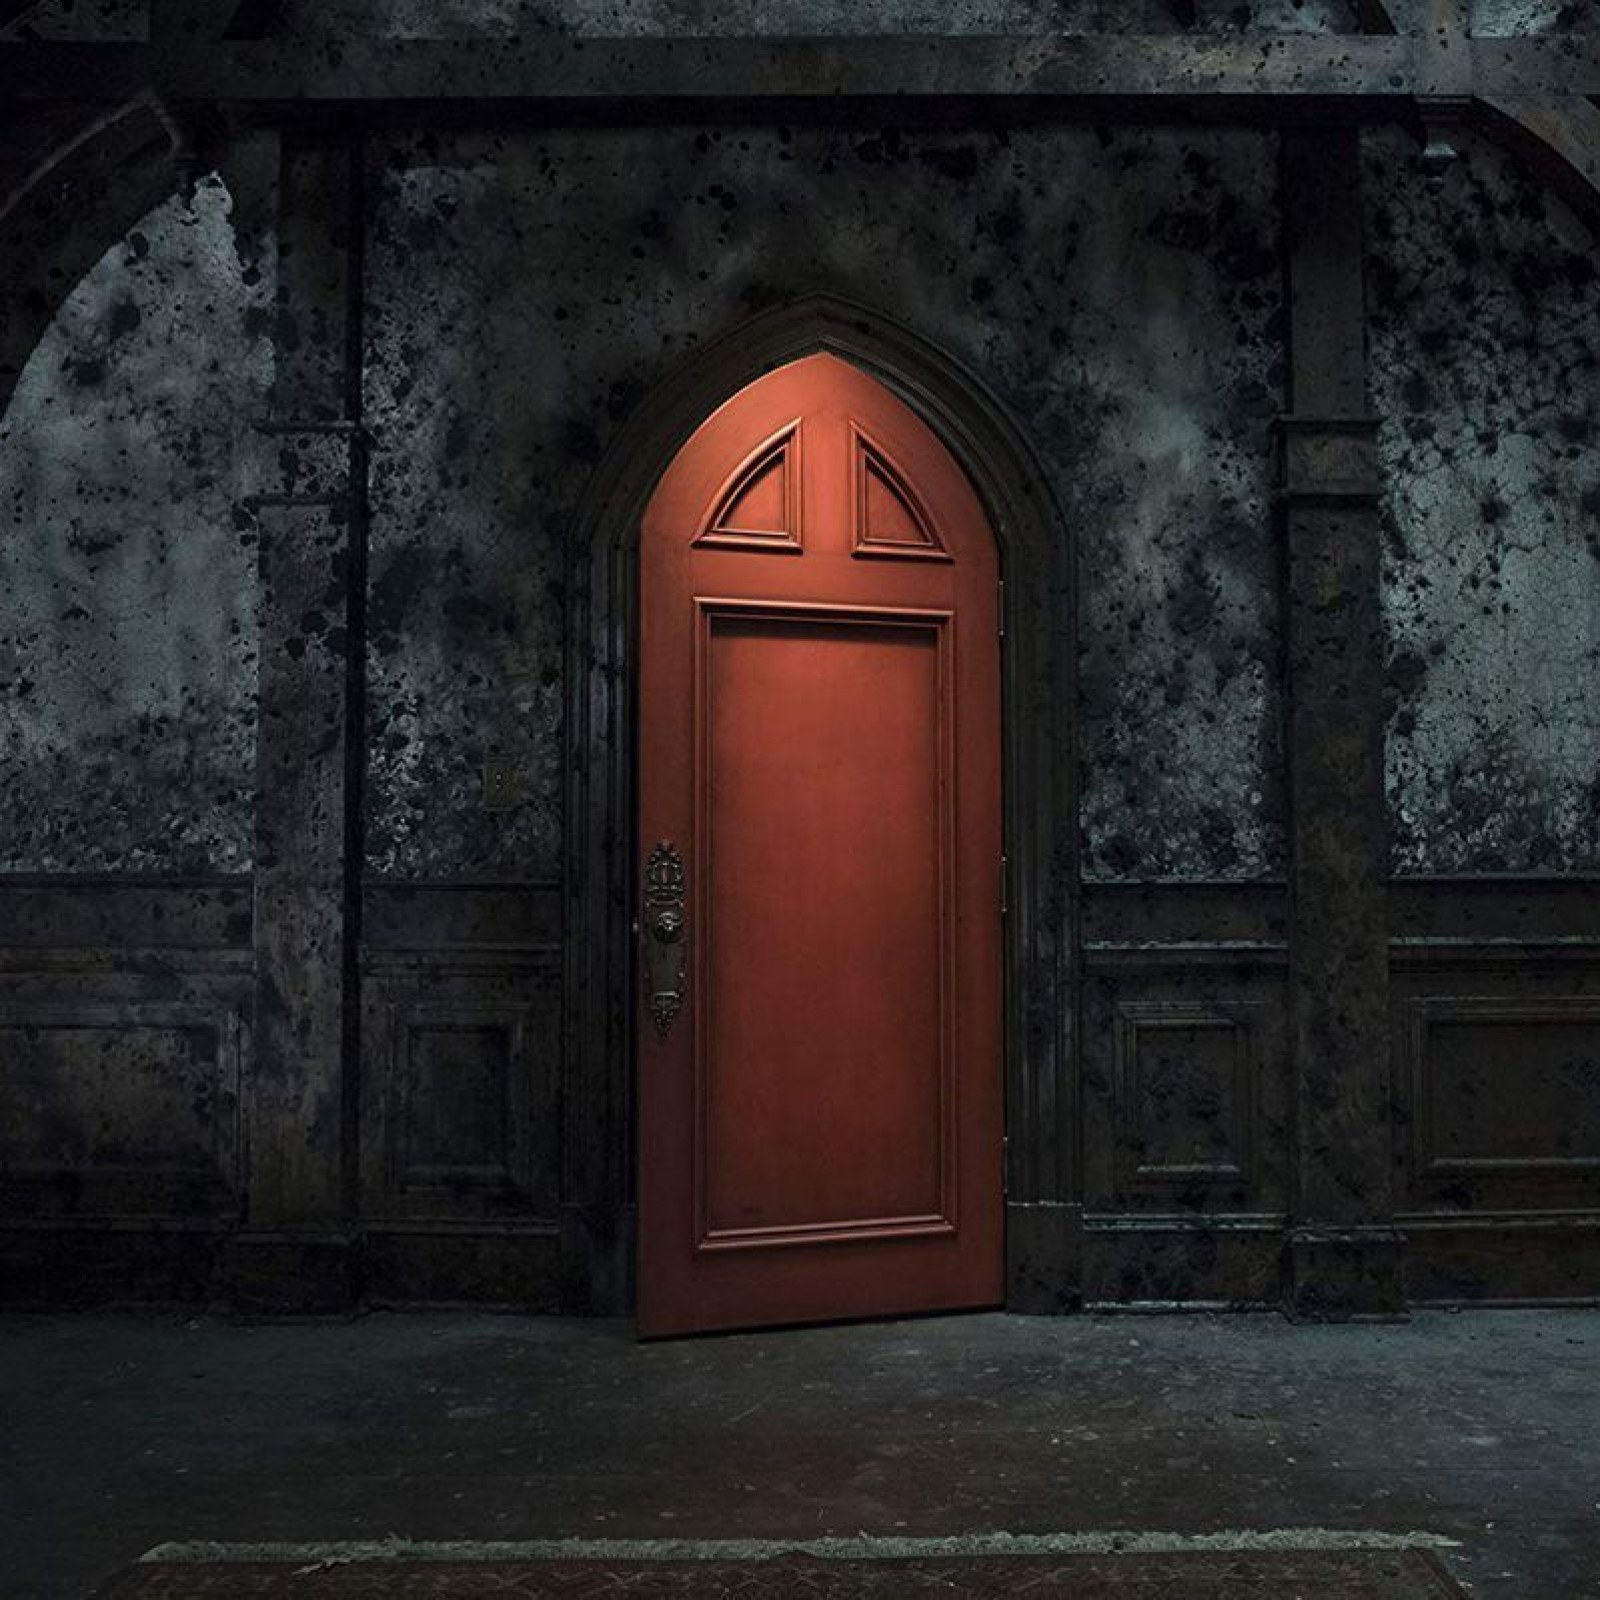 Haunting Of Hill House Is Based On Many True Stories